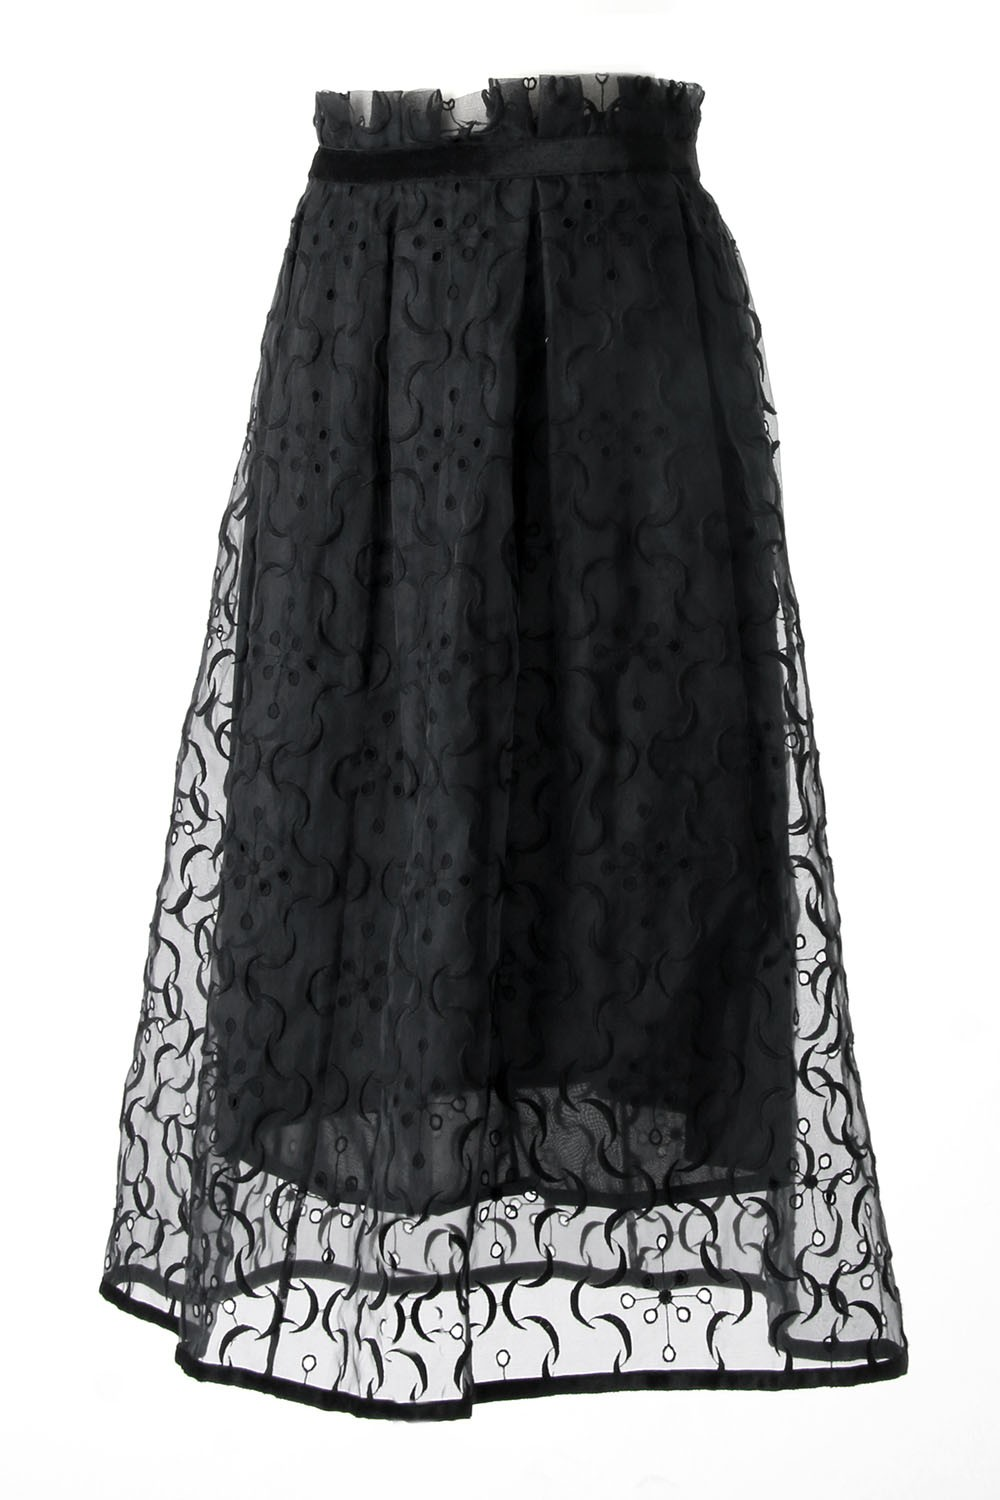 SILK LACE SKIRT SATOKO OZAWA